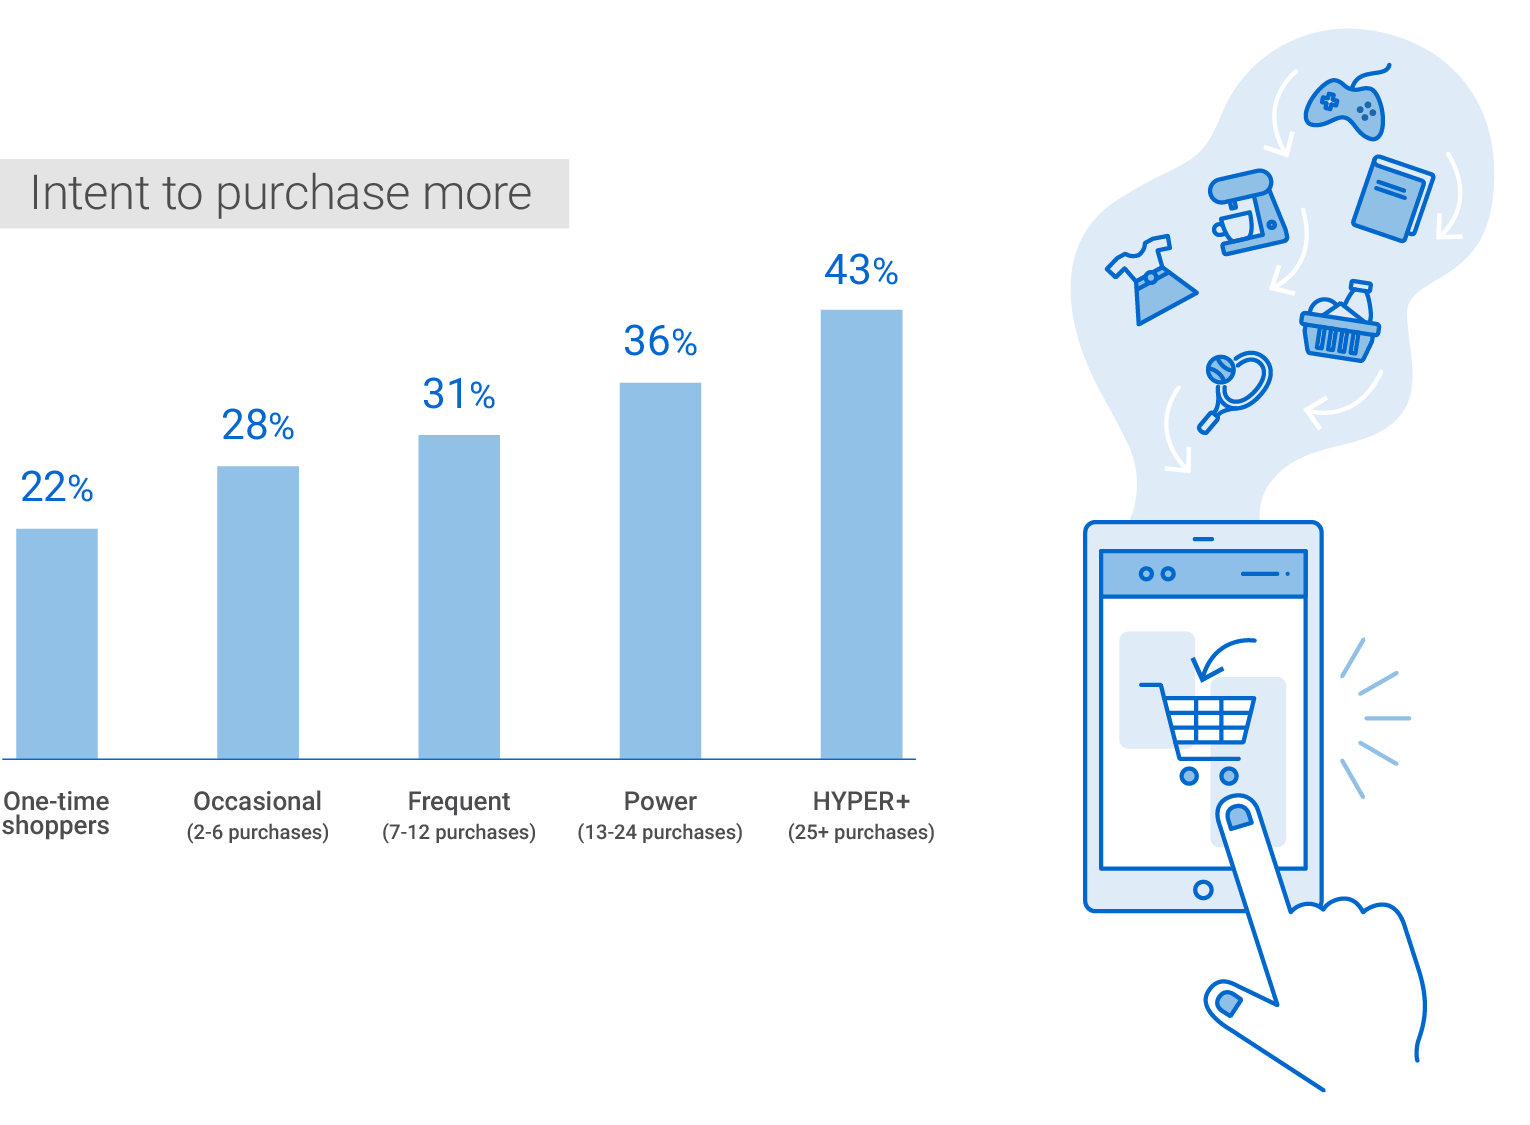 The various online shoppers' Intent to purchase more by the numbers. One-time shoppers: 22 per cent. Occasional shoppers (2 to 4 purchases per year): 28 per cent. Frequent shoppers (7 to 12 purchases per year): 31 per cent. Power shoppers (13 to 24 purchases per year): 36 per cent. HYPER+ shoppers (25+ purchases per year): 43 per cent.